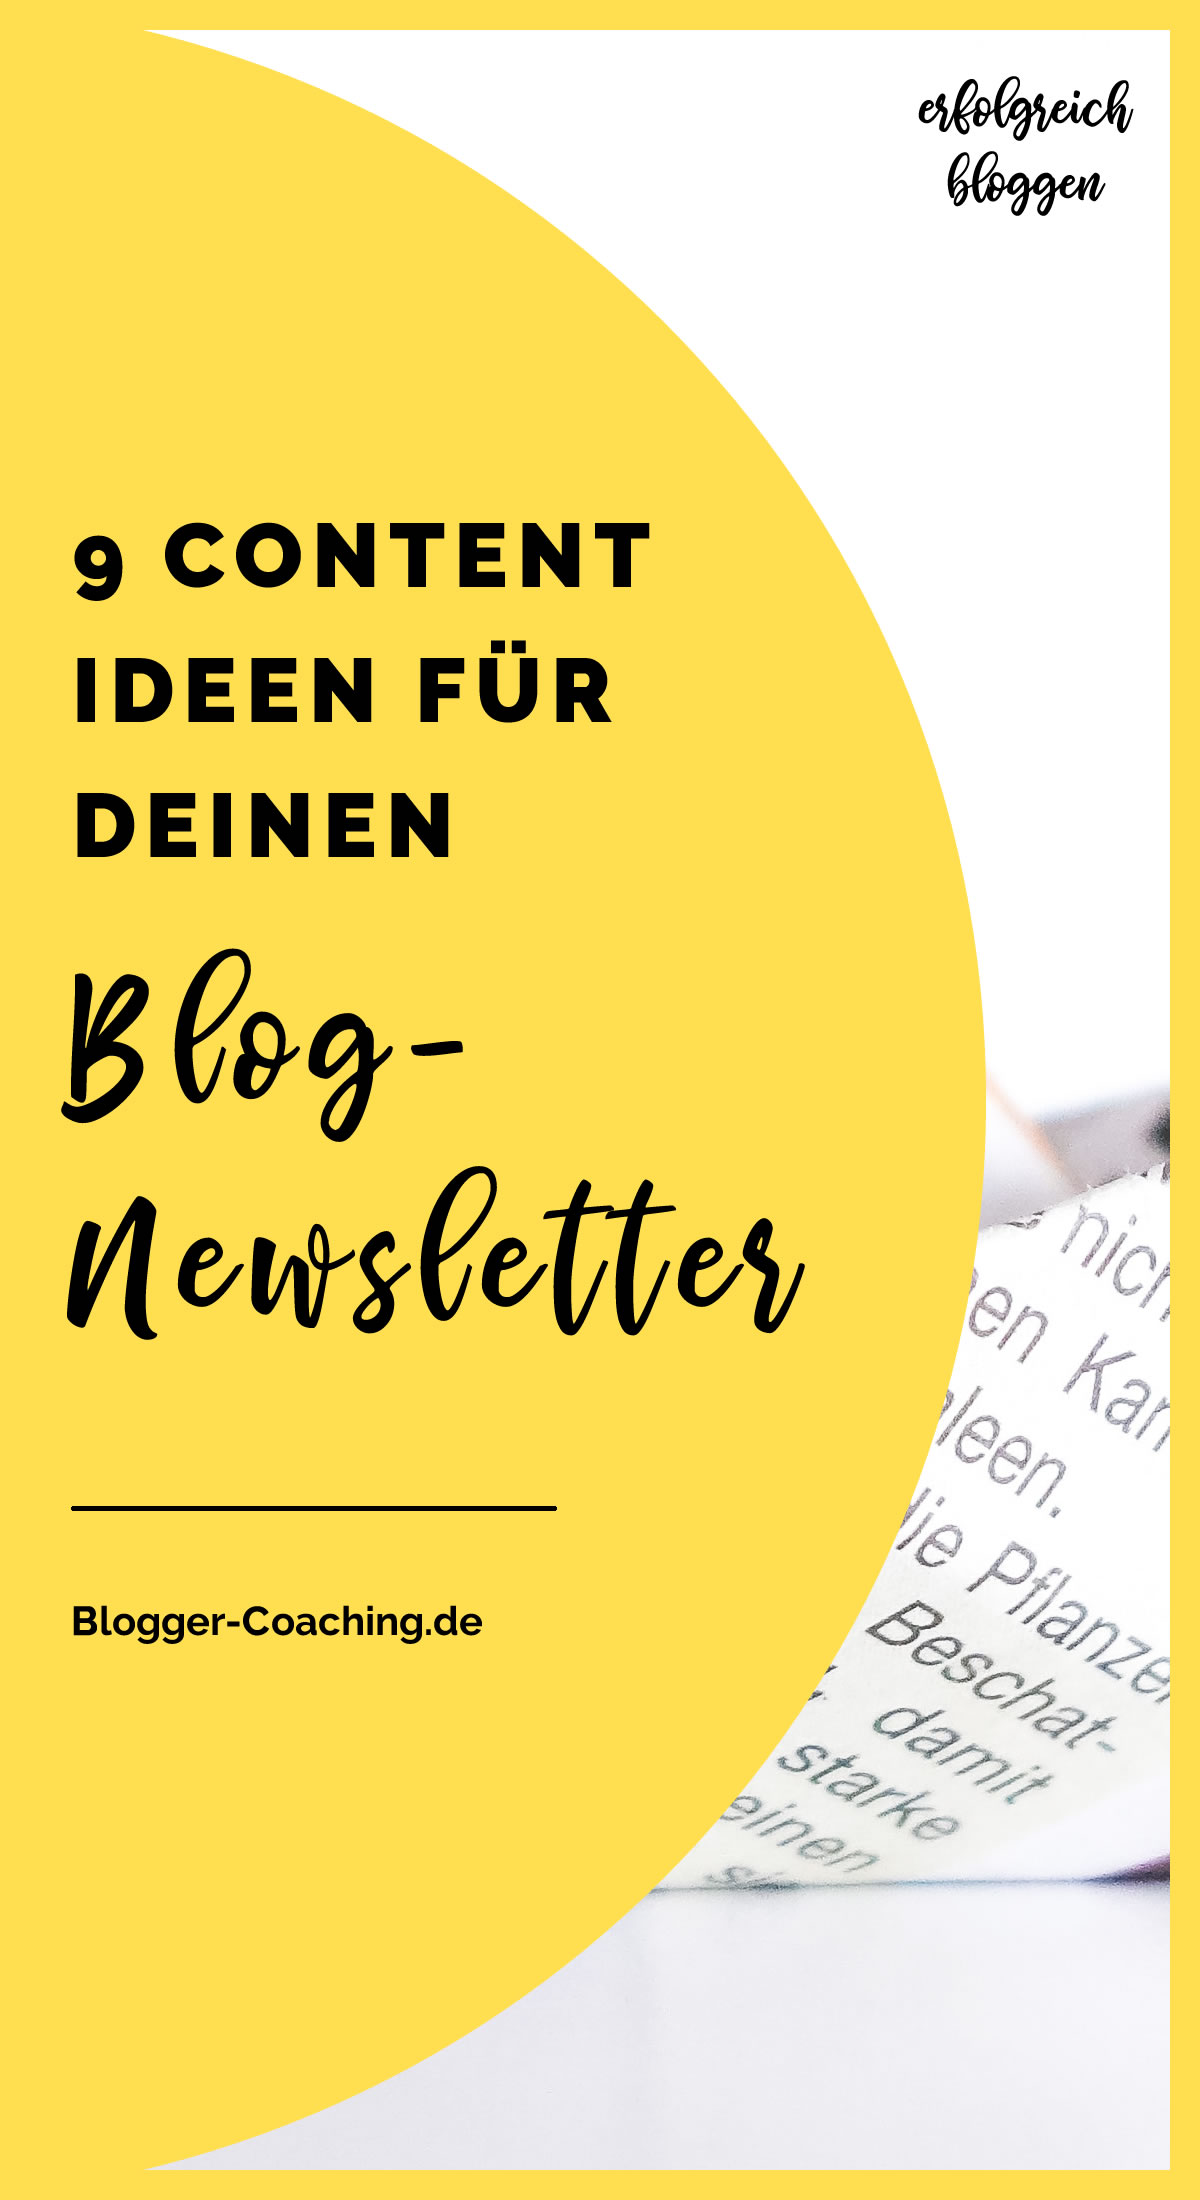 E-Mail-Marketing - Brauche ich einen Newsletter für meinen Blog? | Blogger-Coaching.de - Erfolgsstrategien für deinen Blog #blogger #bloggen #newsletter #marketing #dsgvo